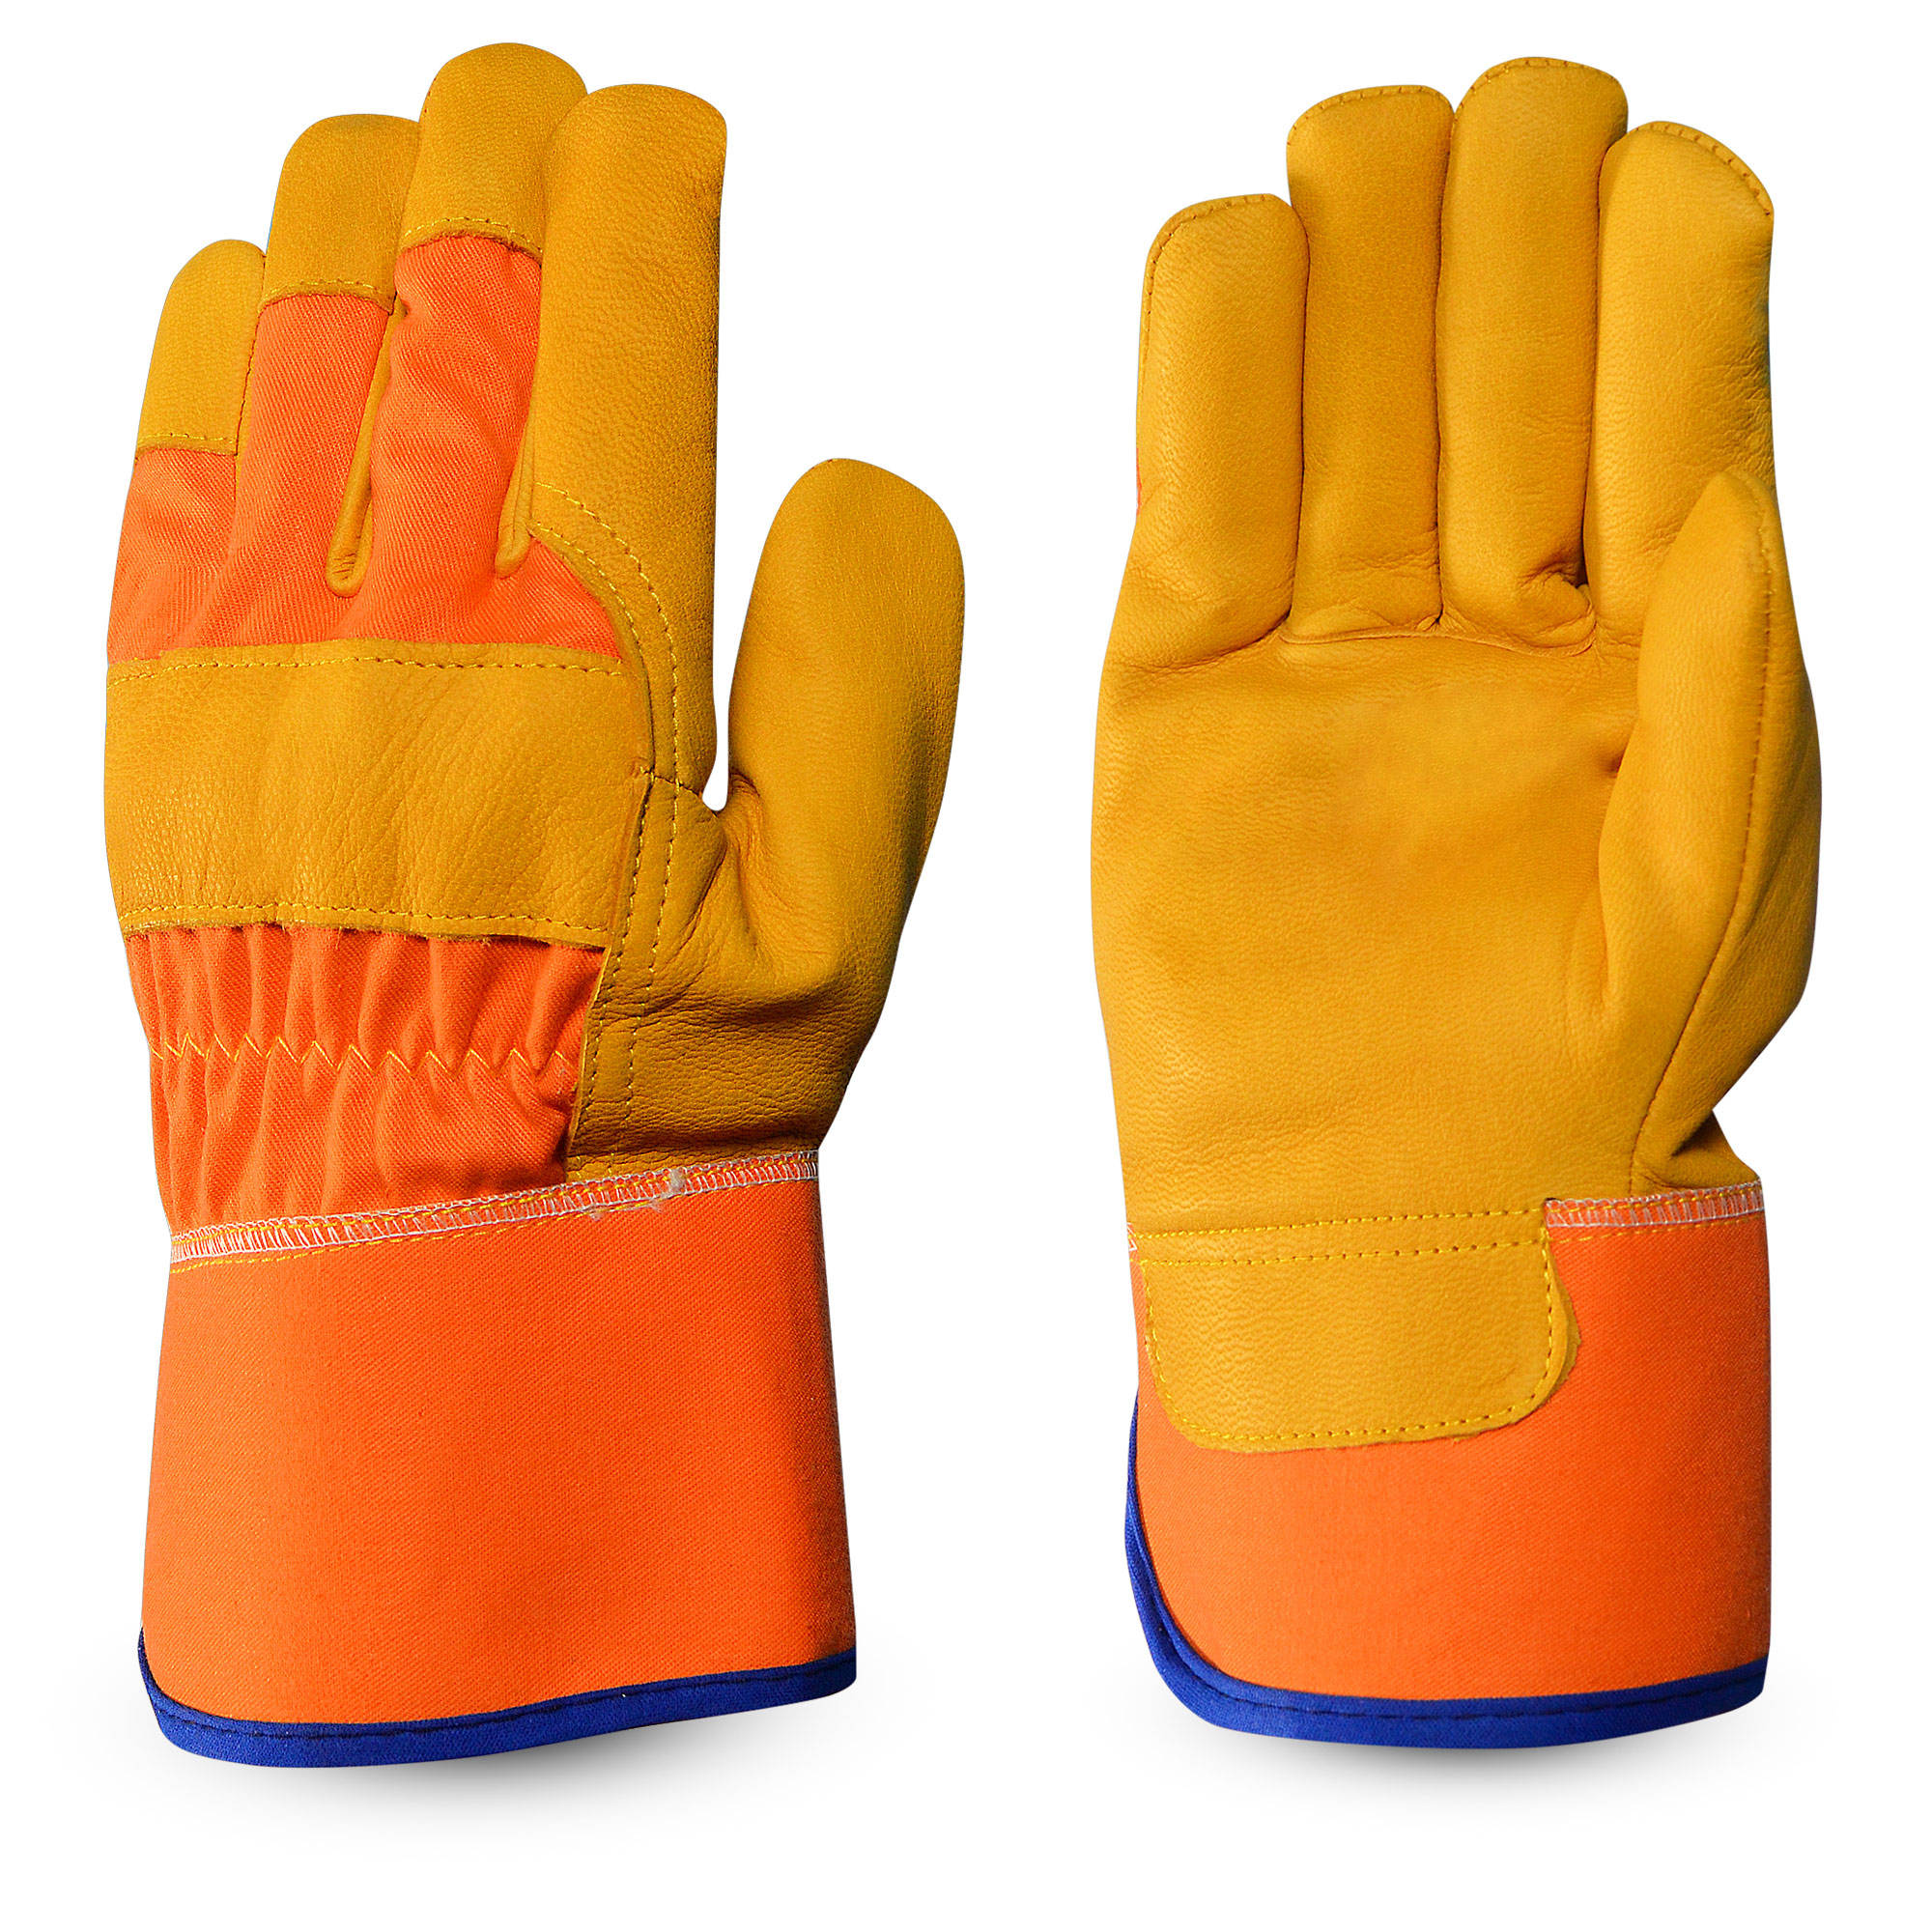 Goatskin Working Glove With Orange Cotton Zeen